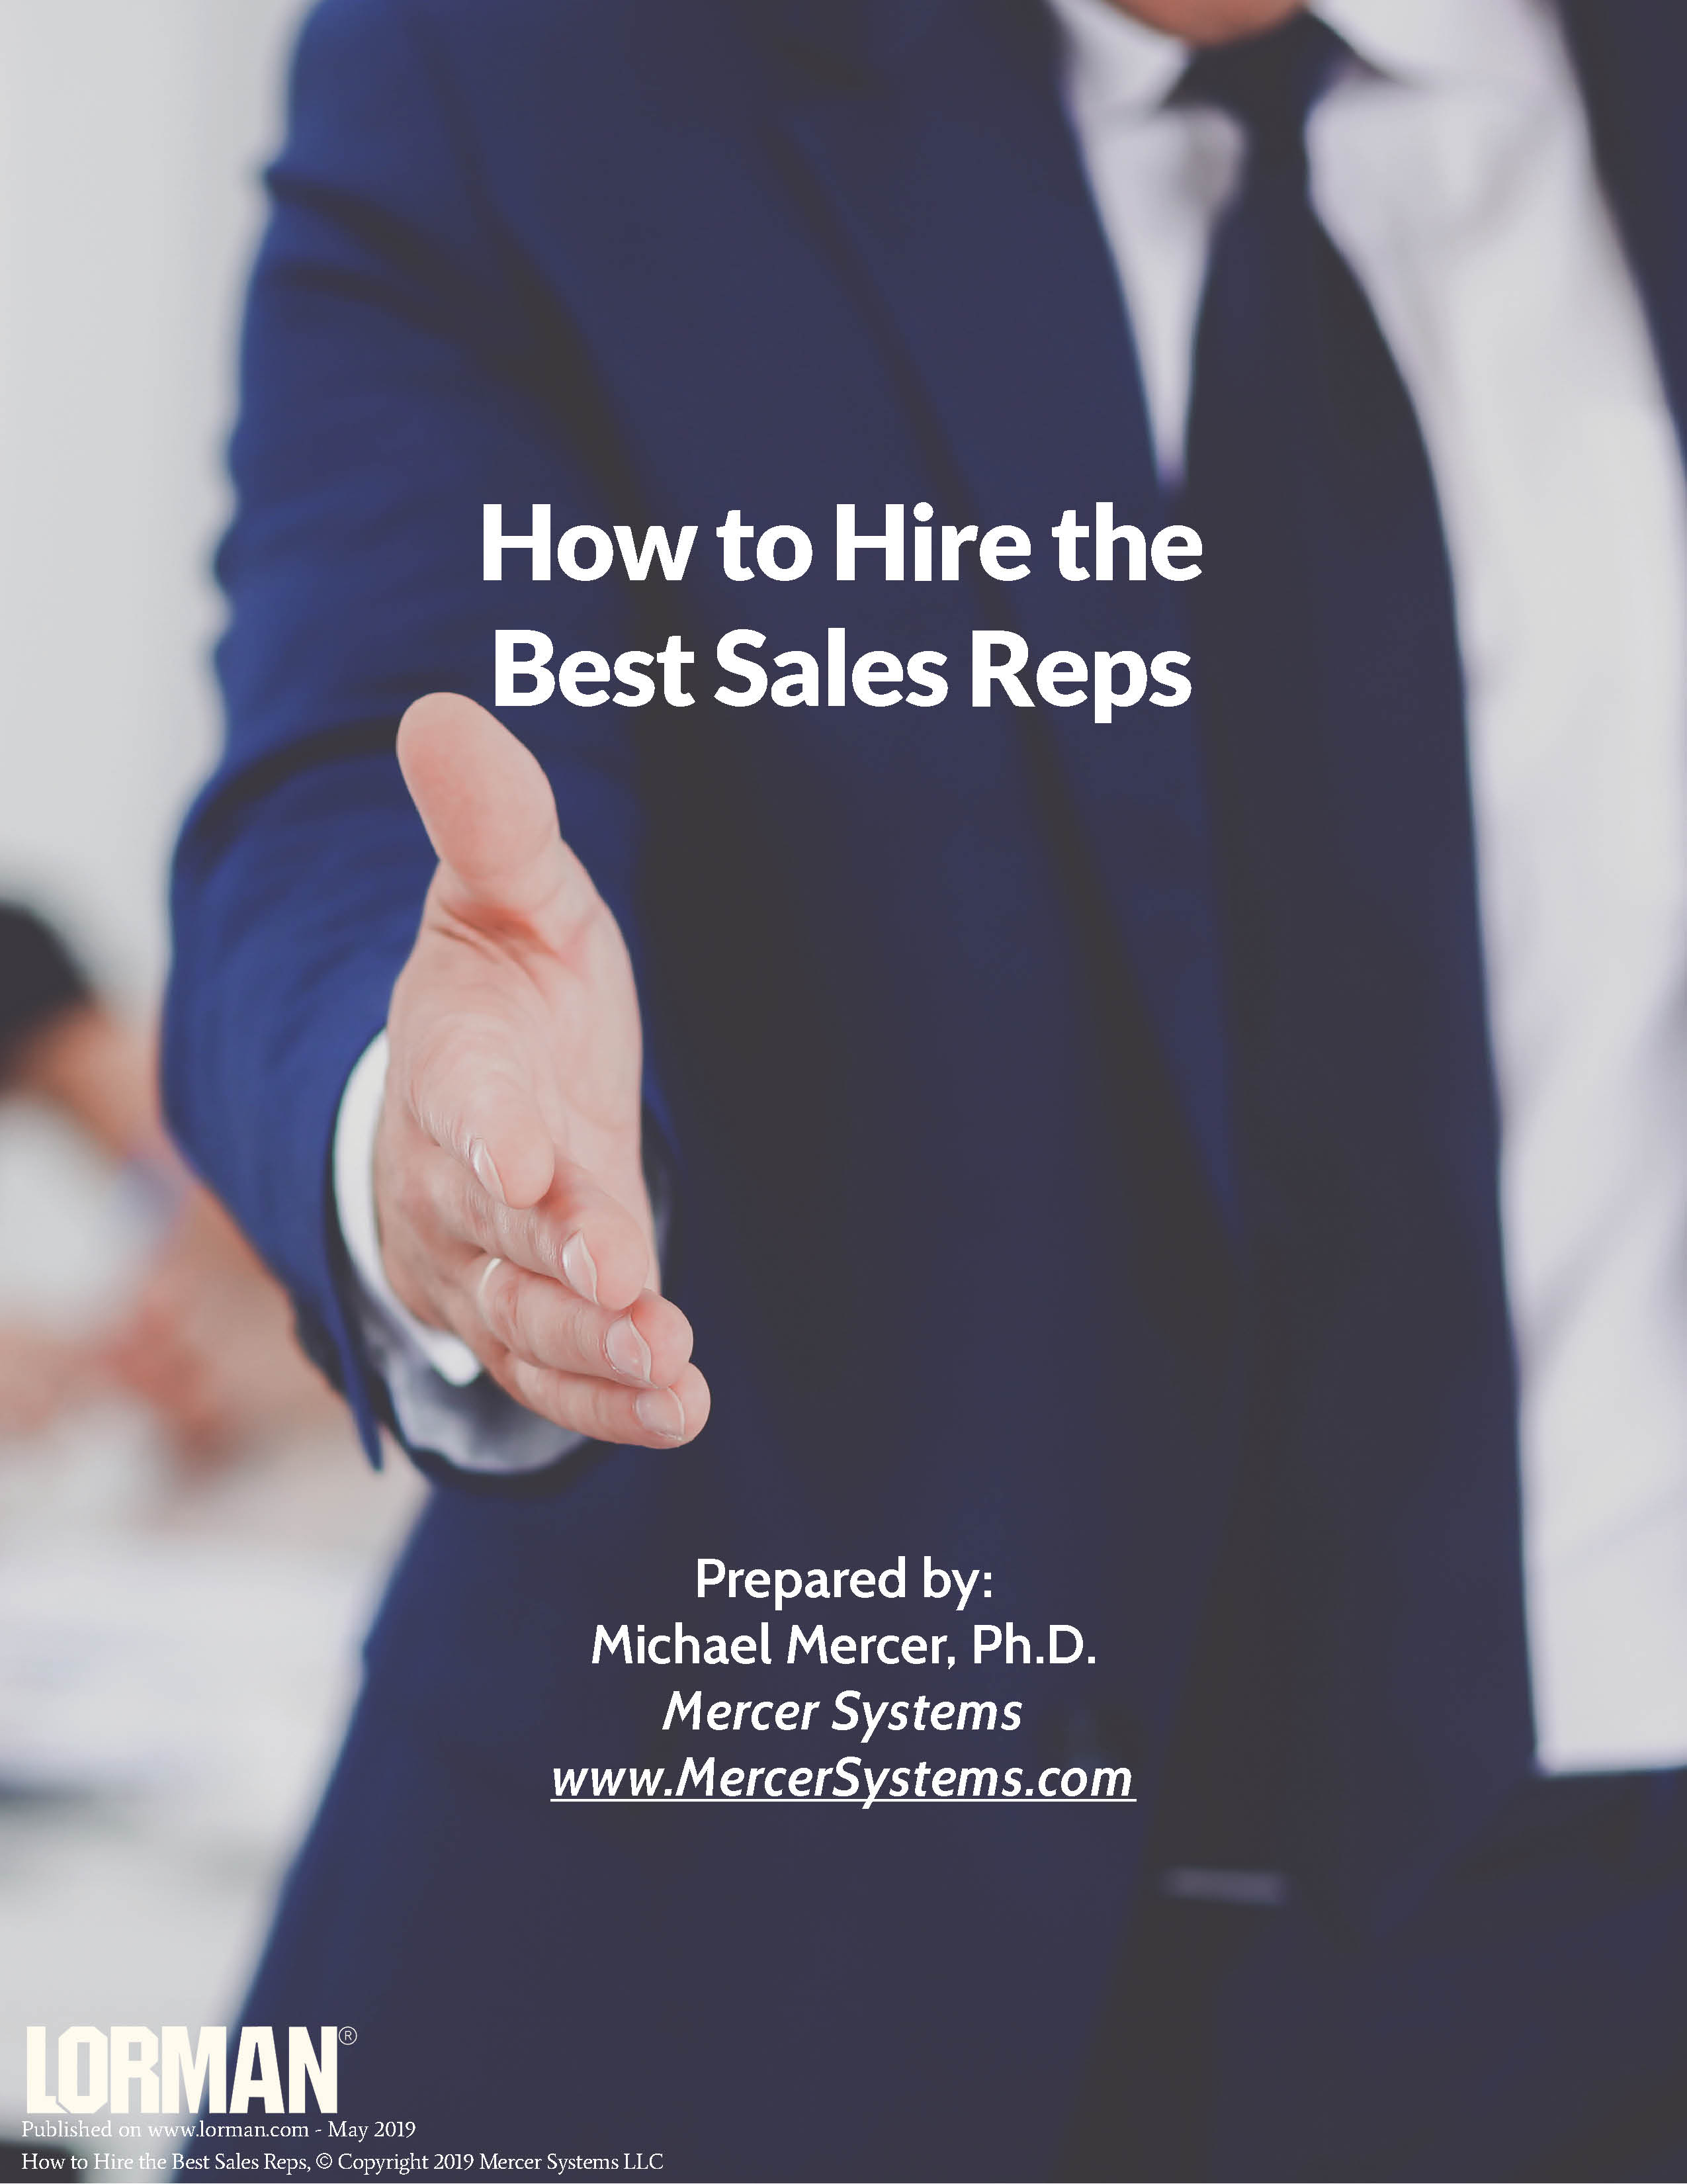 How to Hire the Best Sales Reps